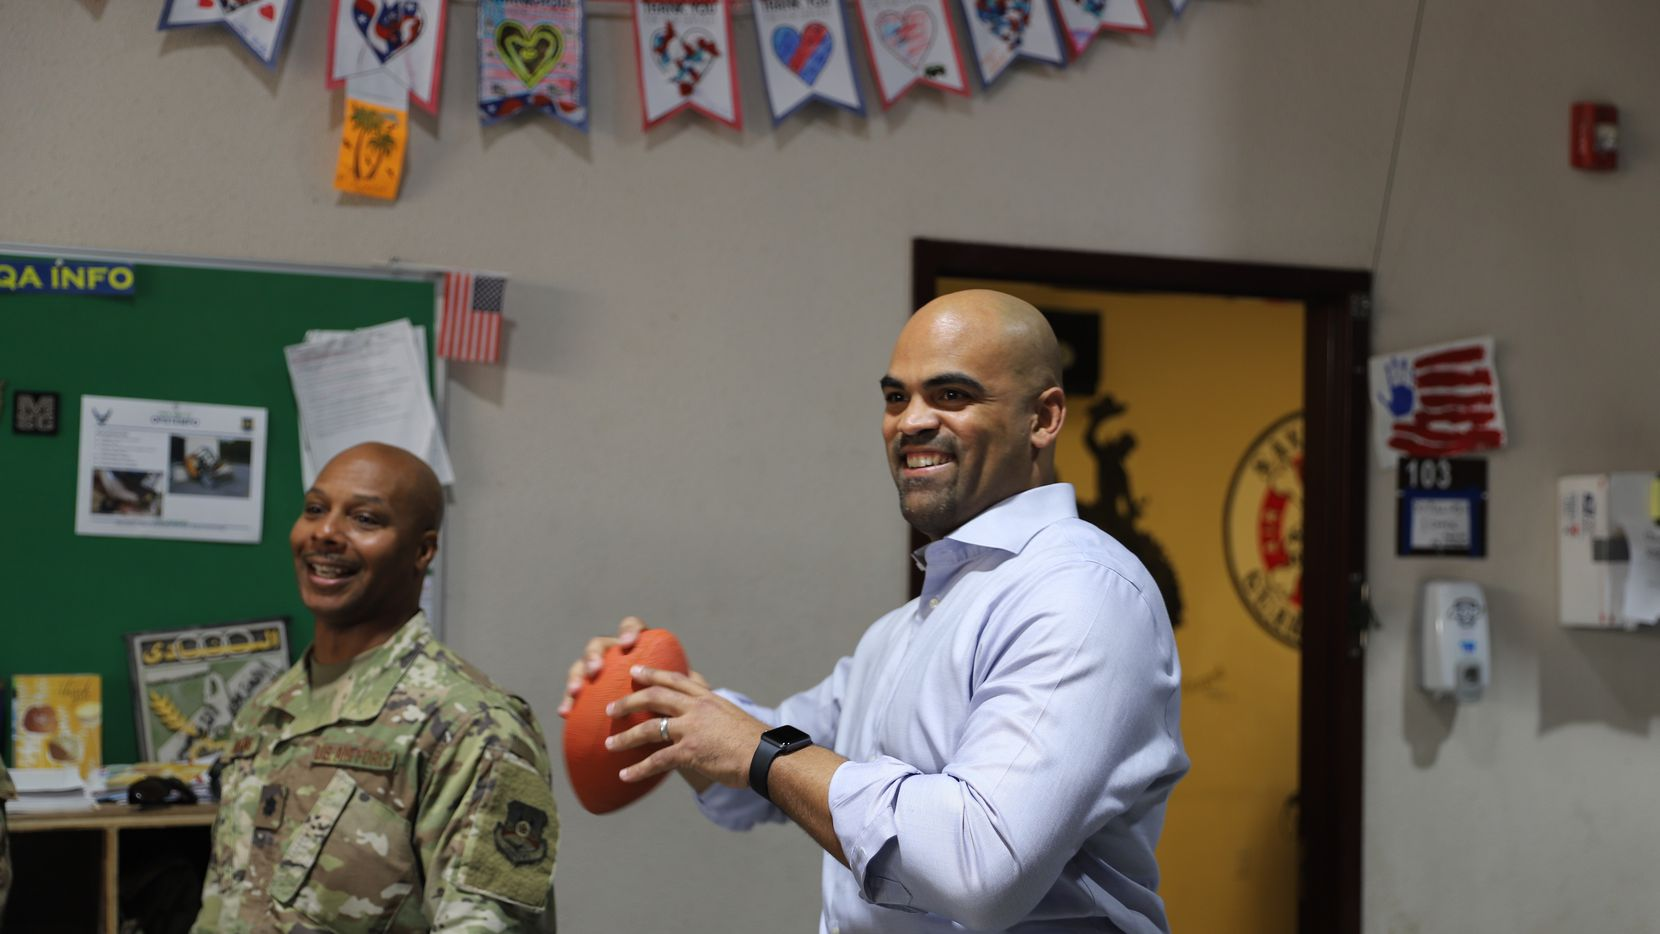 Rep. Colin Allred, D-Dallas, throws a football at Camp Arifjan in Kuwait. Allred visited the base as part of a weeklong trip to visit soldiers in Kuwait and Afghanistan late last year.